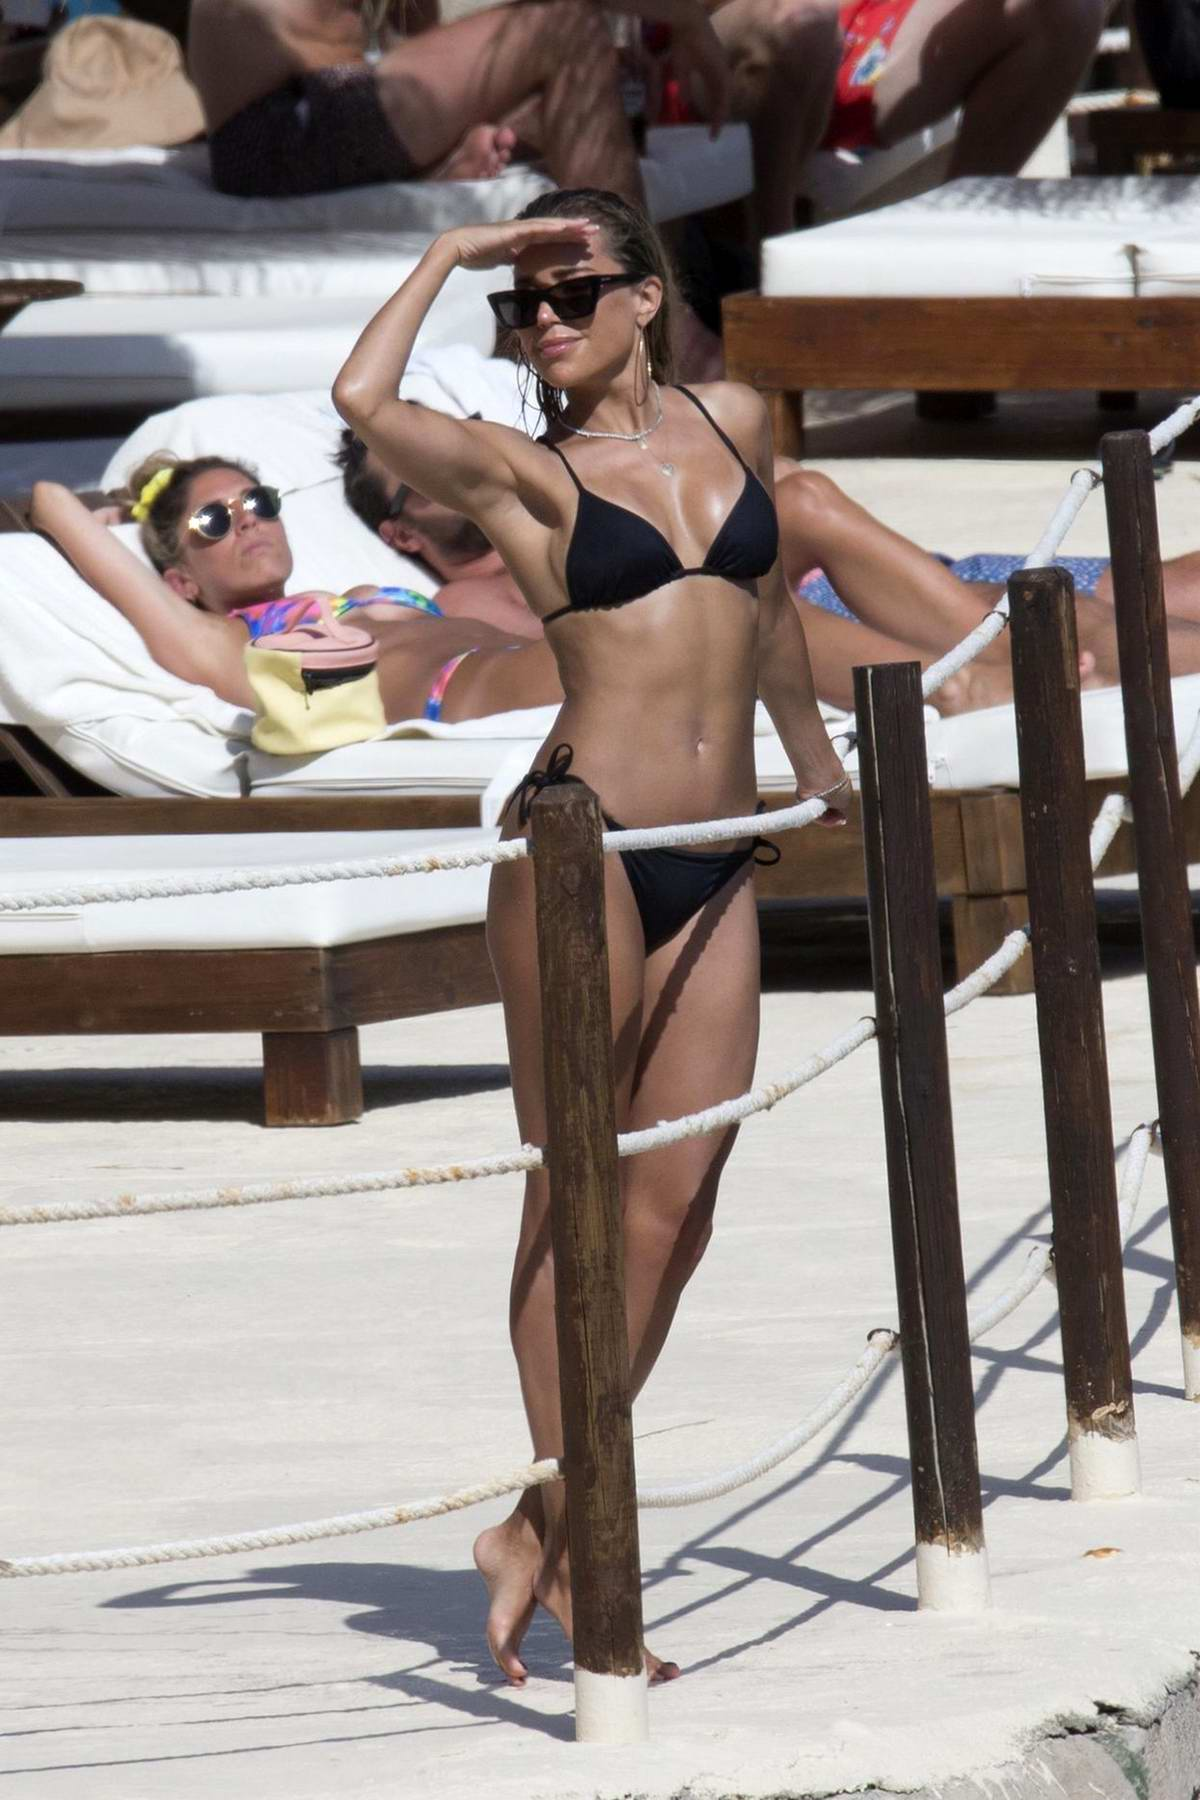 Sylvie Meis wears a black bikini as she enjoys a day at the beach in Mallorca, Spain